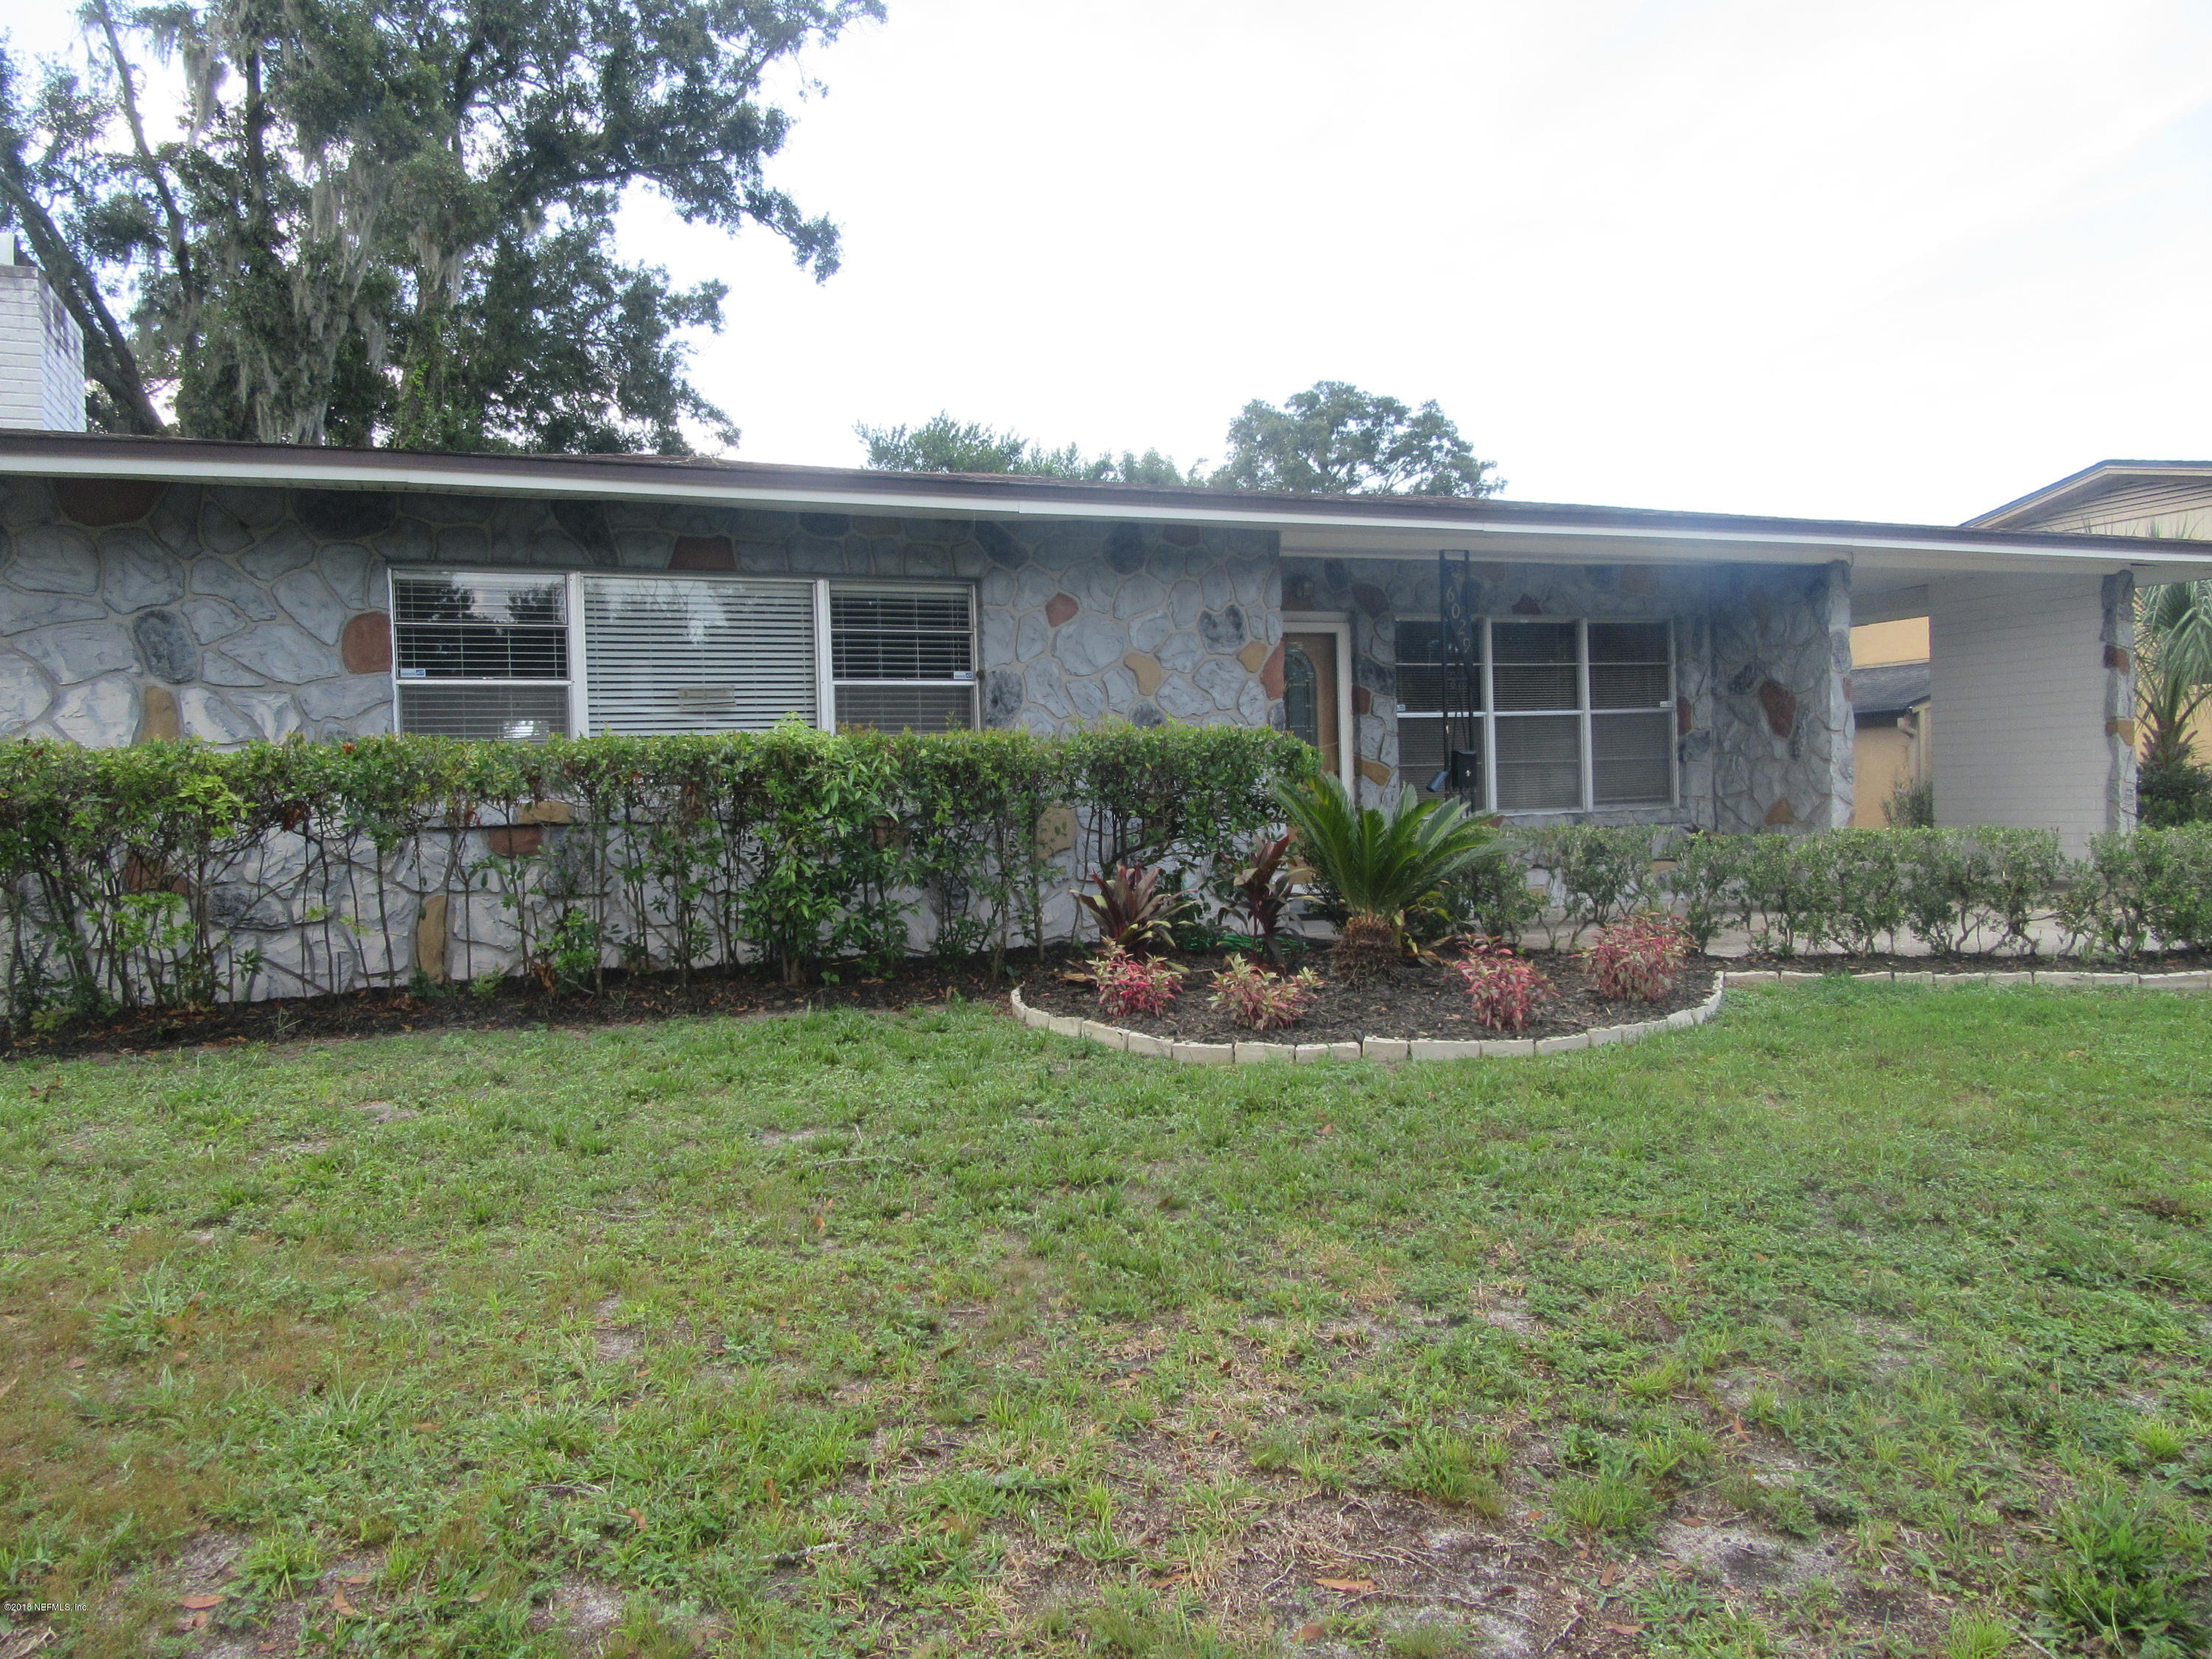 6029 WATEREDGE, JACKSONVILLE, FLORIDA 32211, 3 Bedrooms Bedrooms, ,2 BathroomsBathrooms,Residential - single family,For sale,WATEREDGE,943518